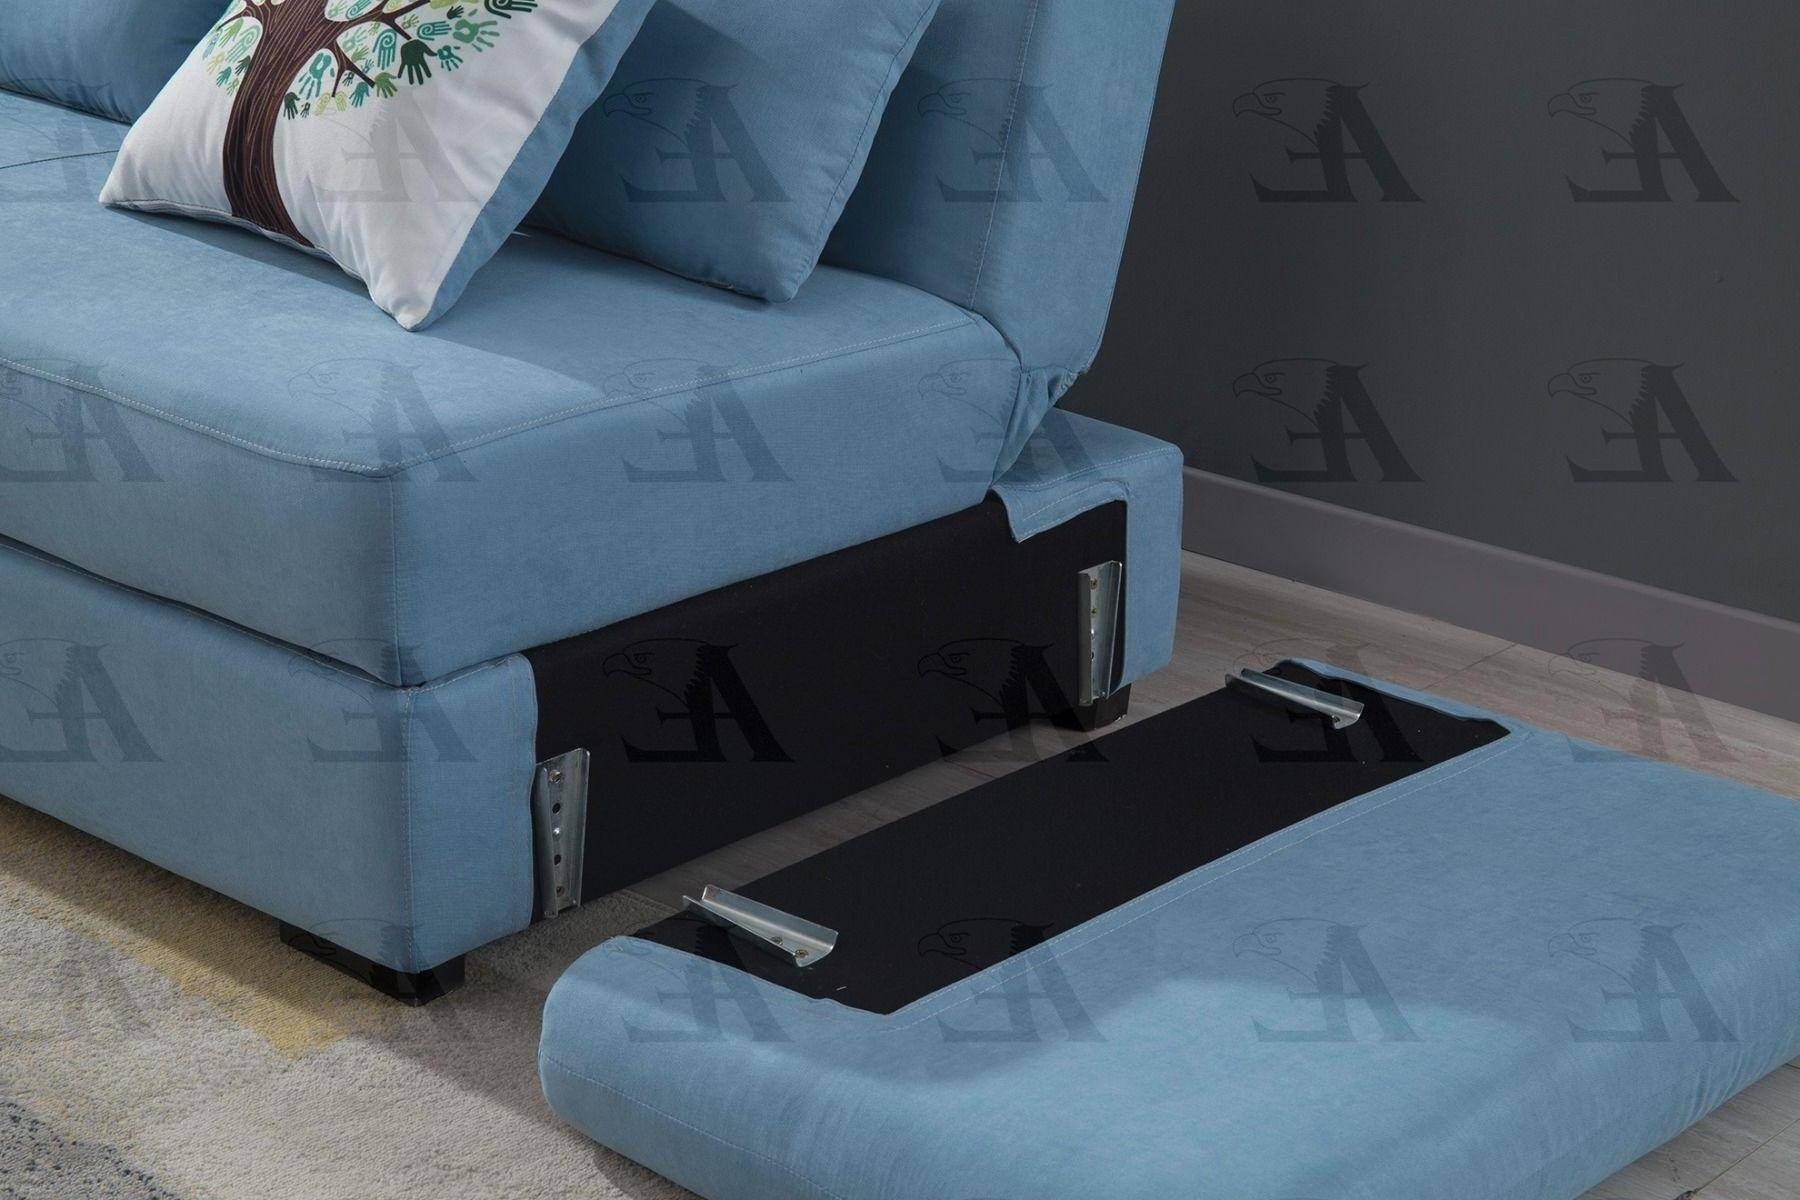 Sofa Bed for Bedroom New Blue Velvet Sectional sofa Bed Set W Storage Left Chaise